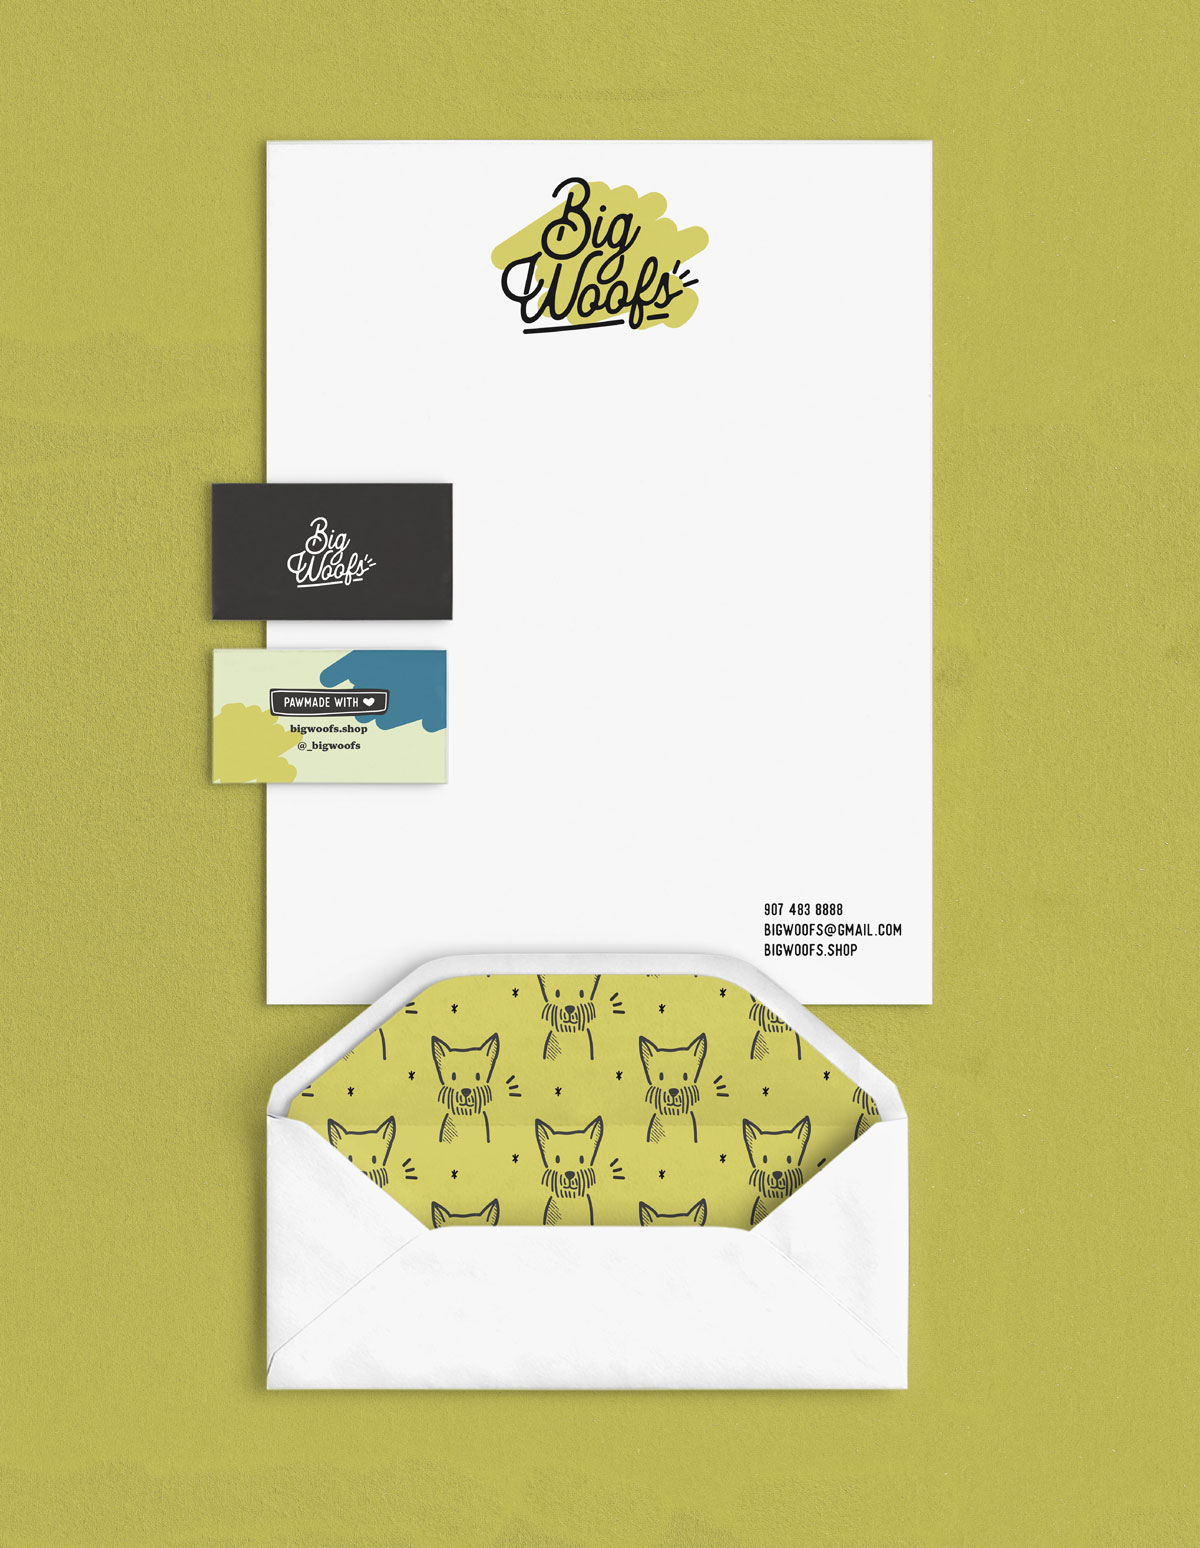 Big Woofs letterhead, business cards, and envelope